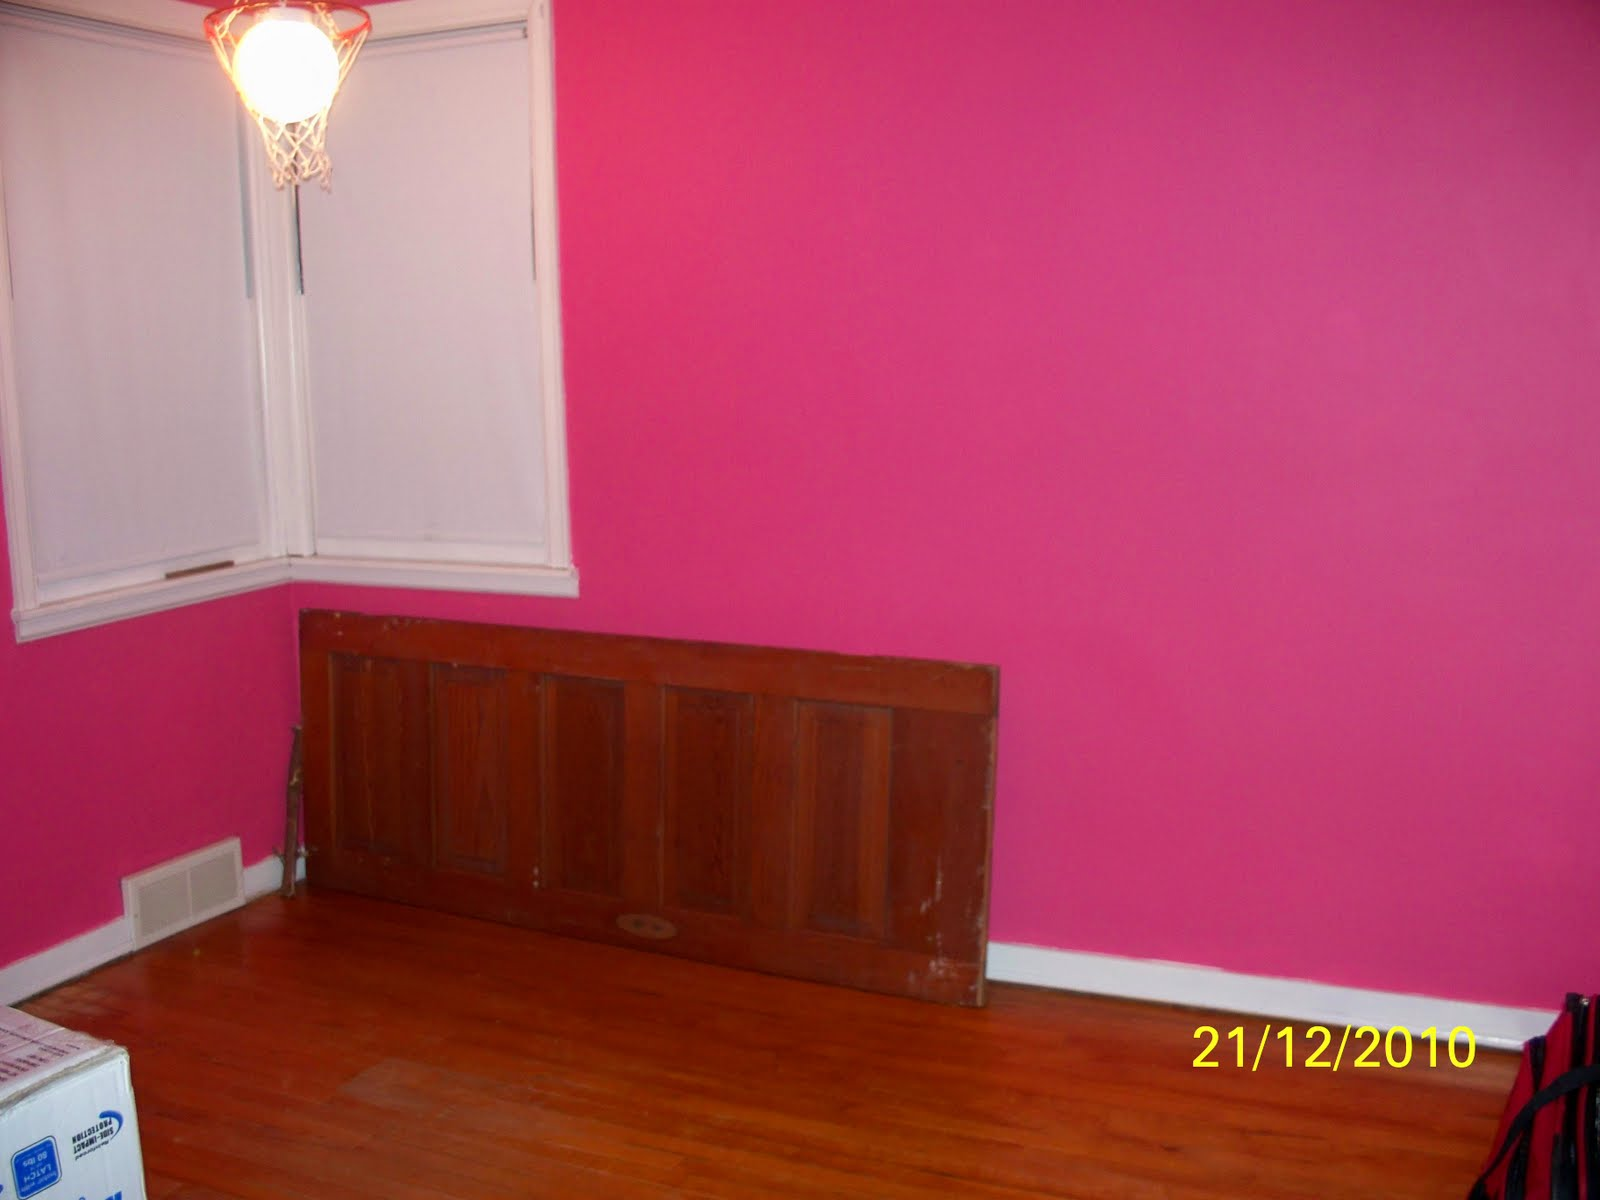 displaying 13 images for light pink bedroom walls